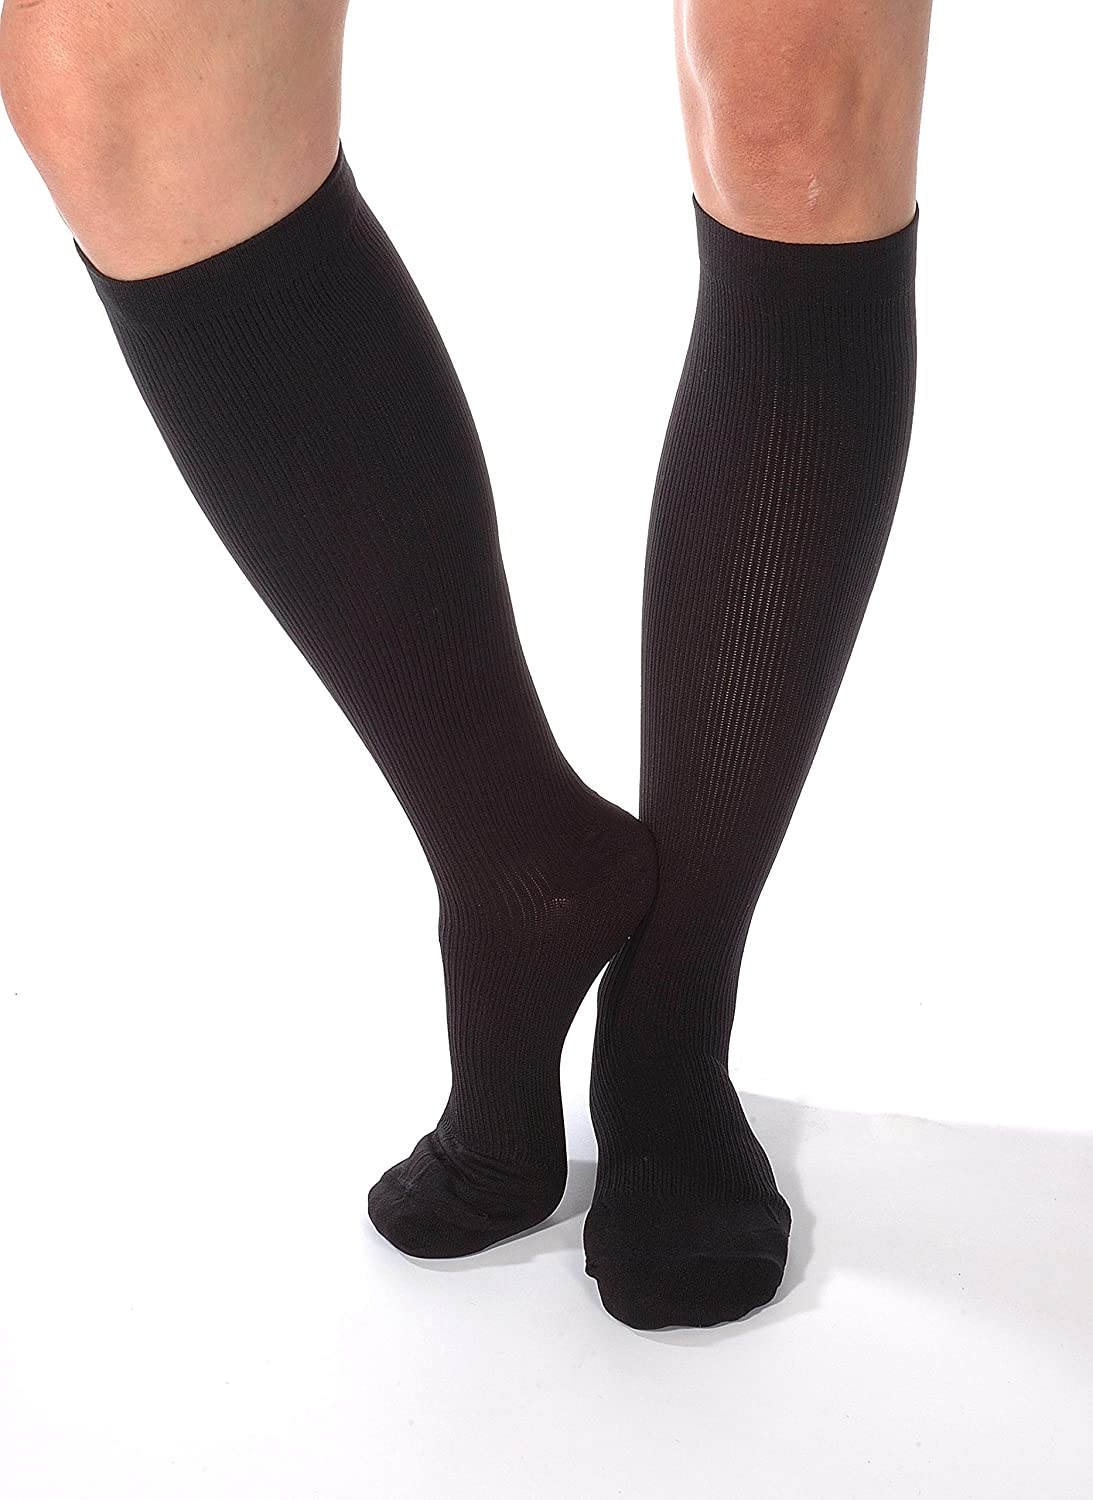 72d0f7dbc2 About the product Mens Dress Compression Socks - Made in the USA - sold per  pair. Firm feeling ribbed material ensures they look and feel like